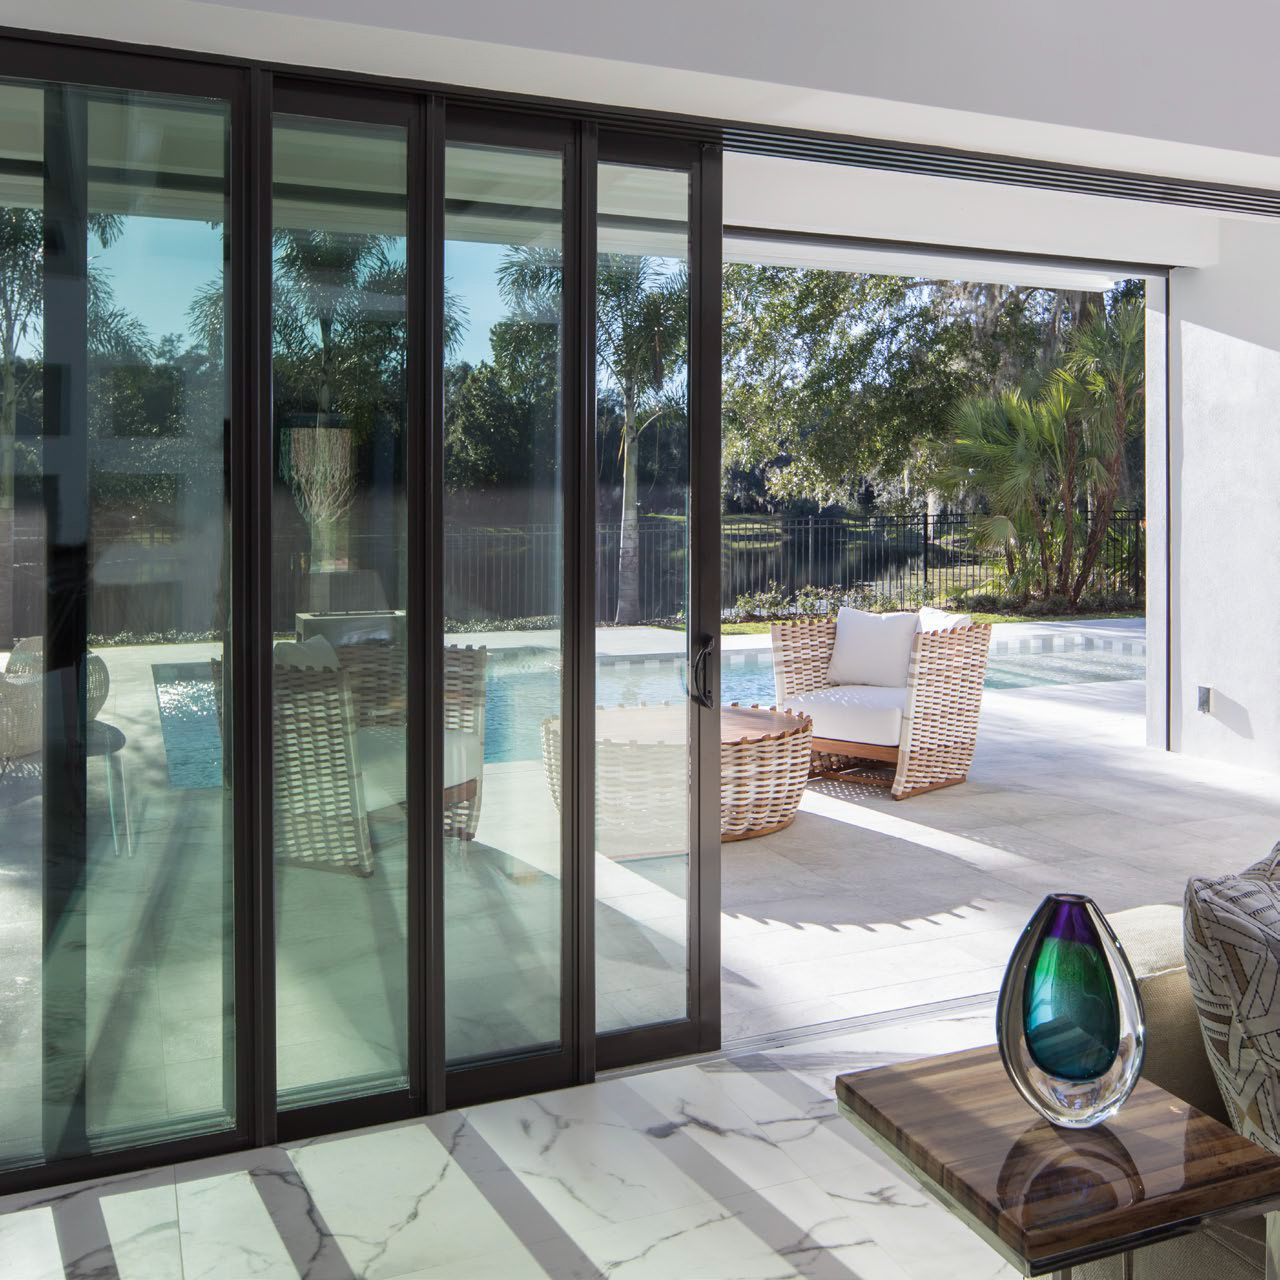 4780 4880 Pocket Sliding Patio Doors Ply Gem Sliding Patio Doors Glass Doors Patio Patio Doors